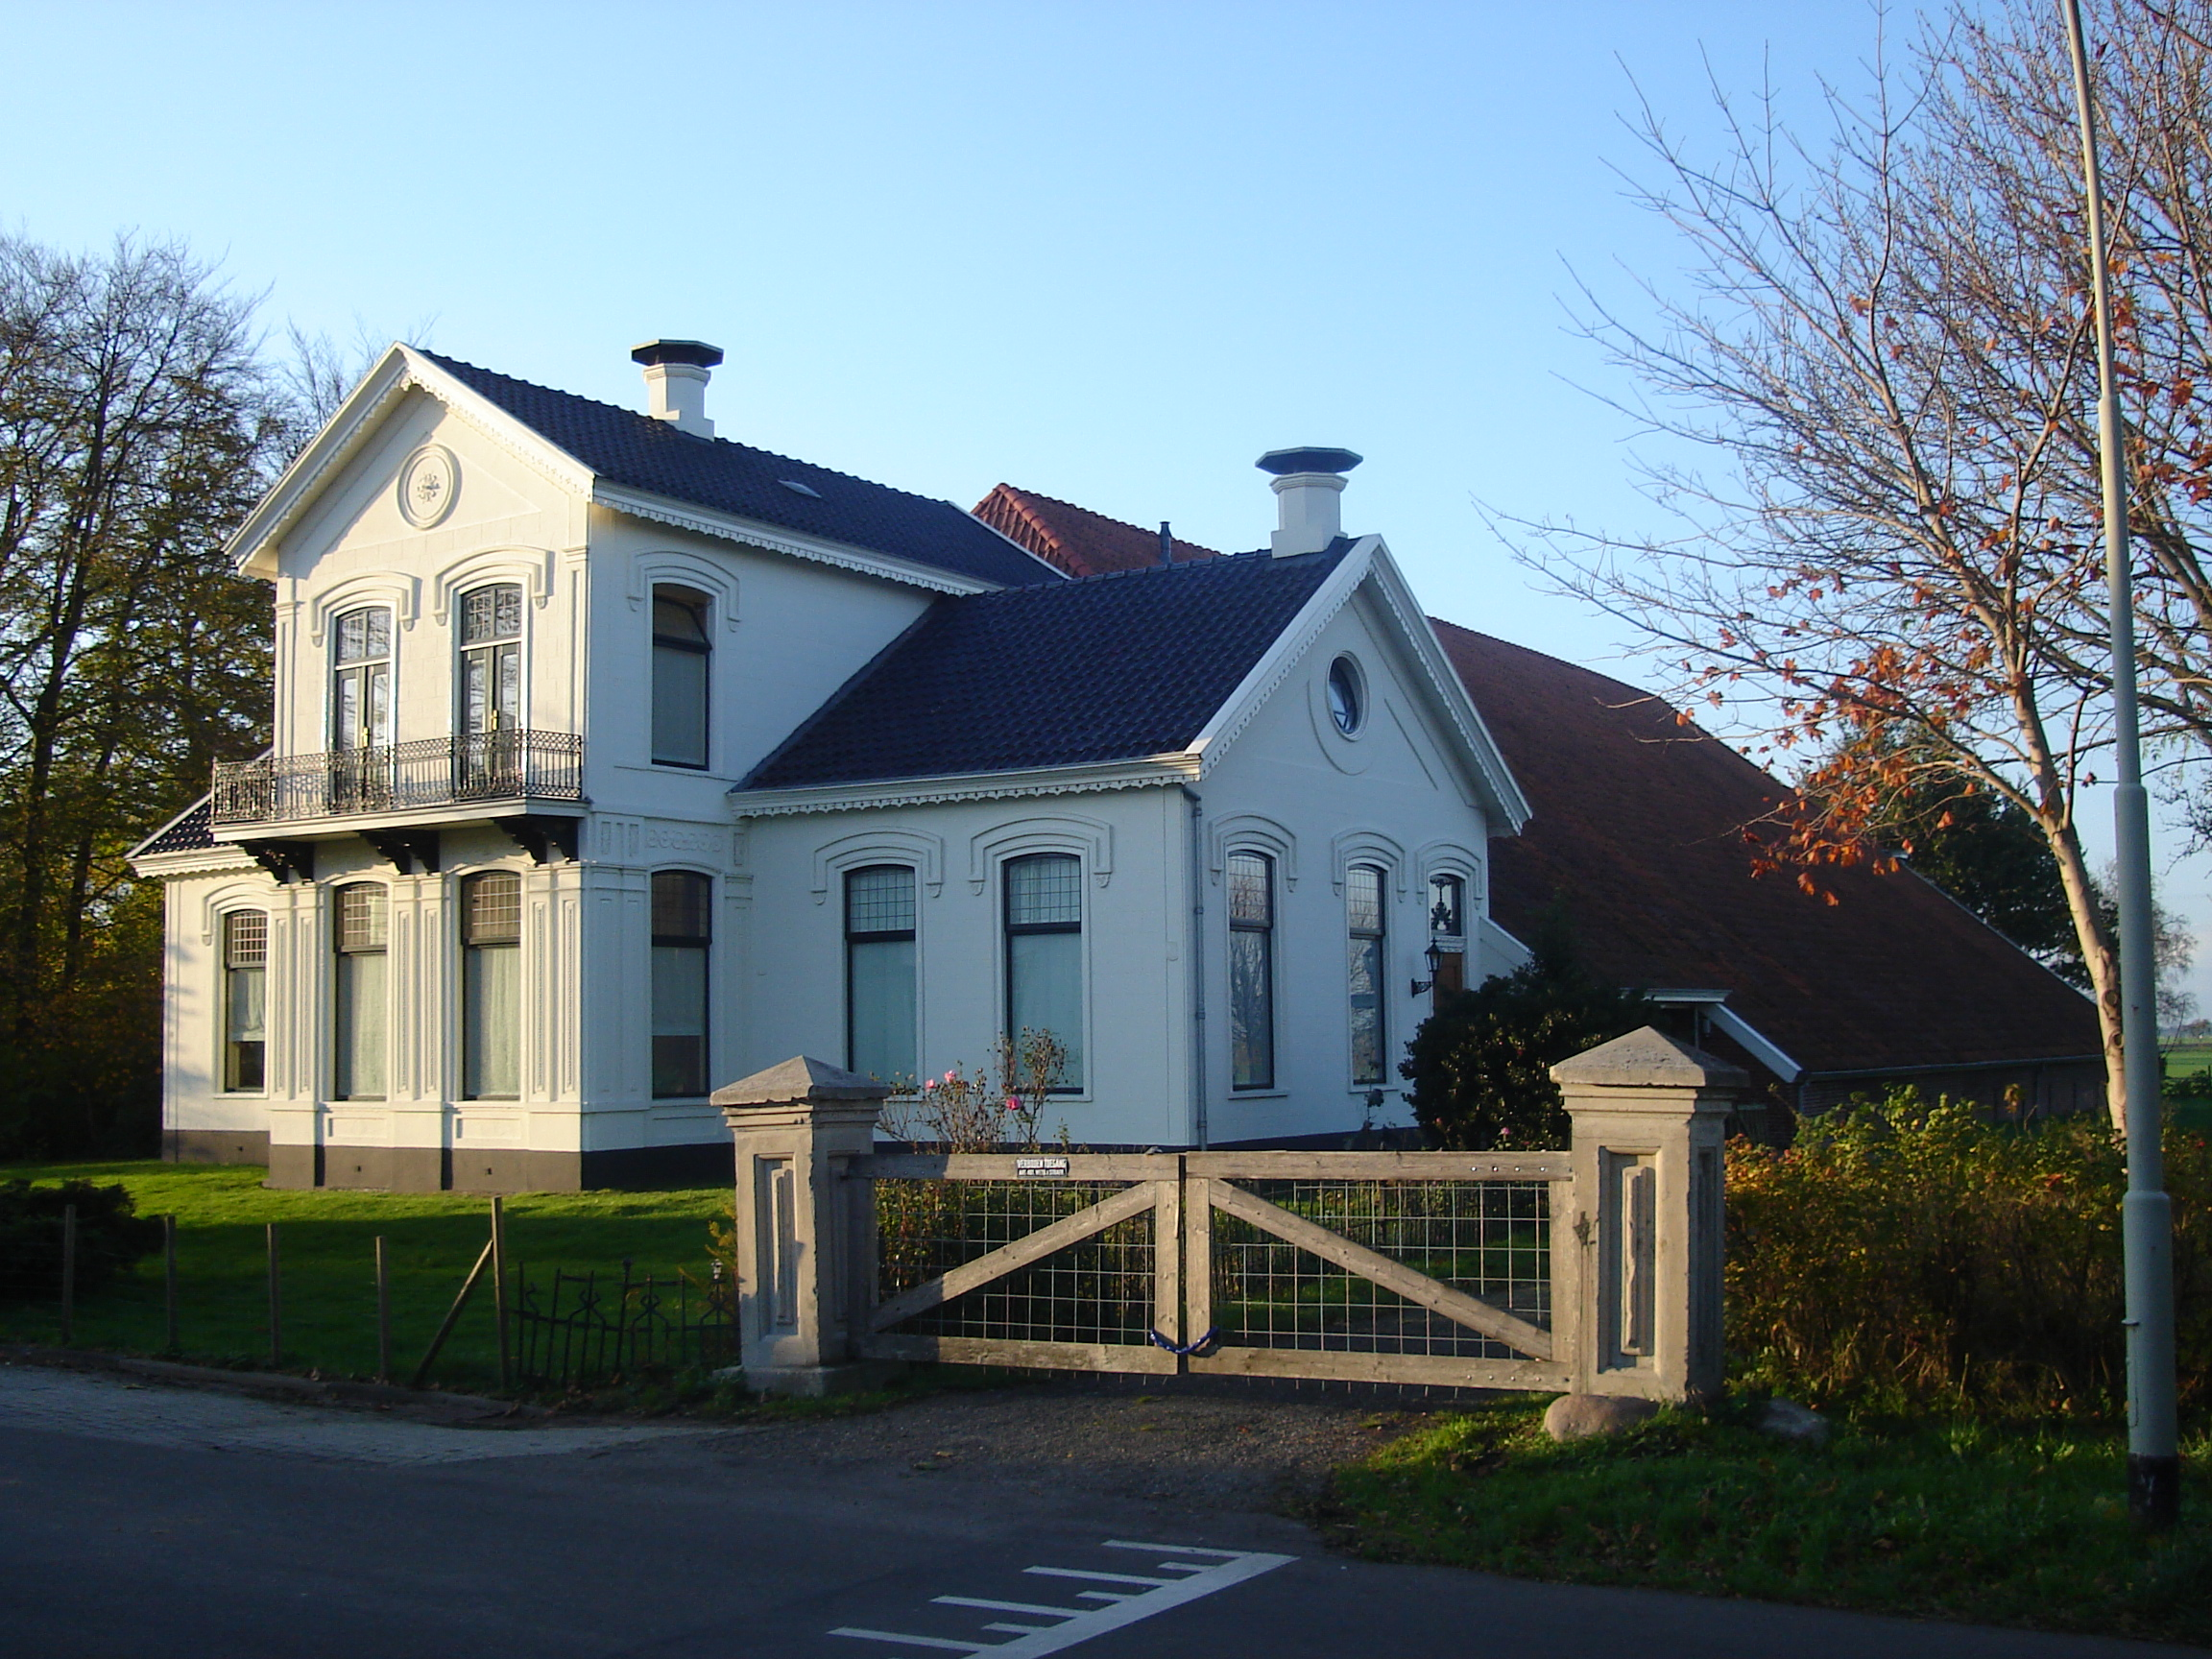 File:Farmhouse Oosterstraat Scheemda Netherlands.JPG ...